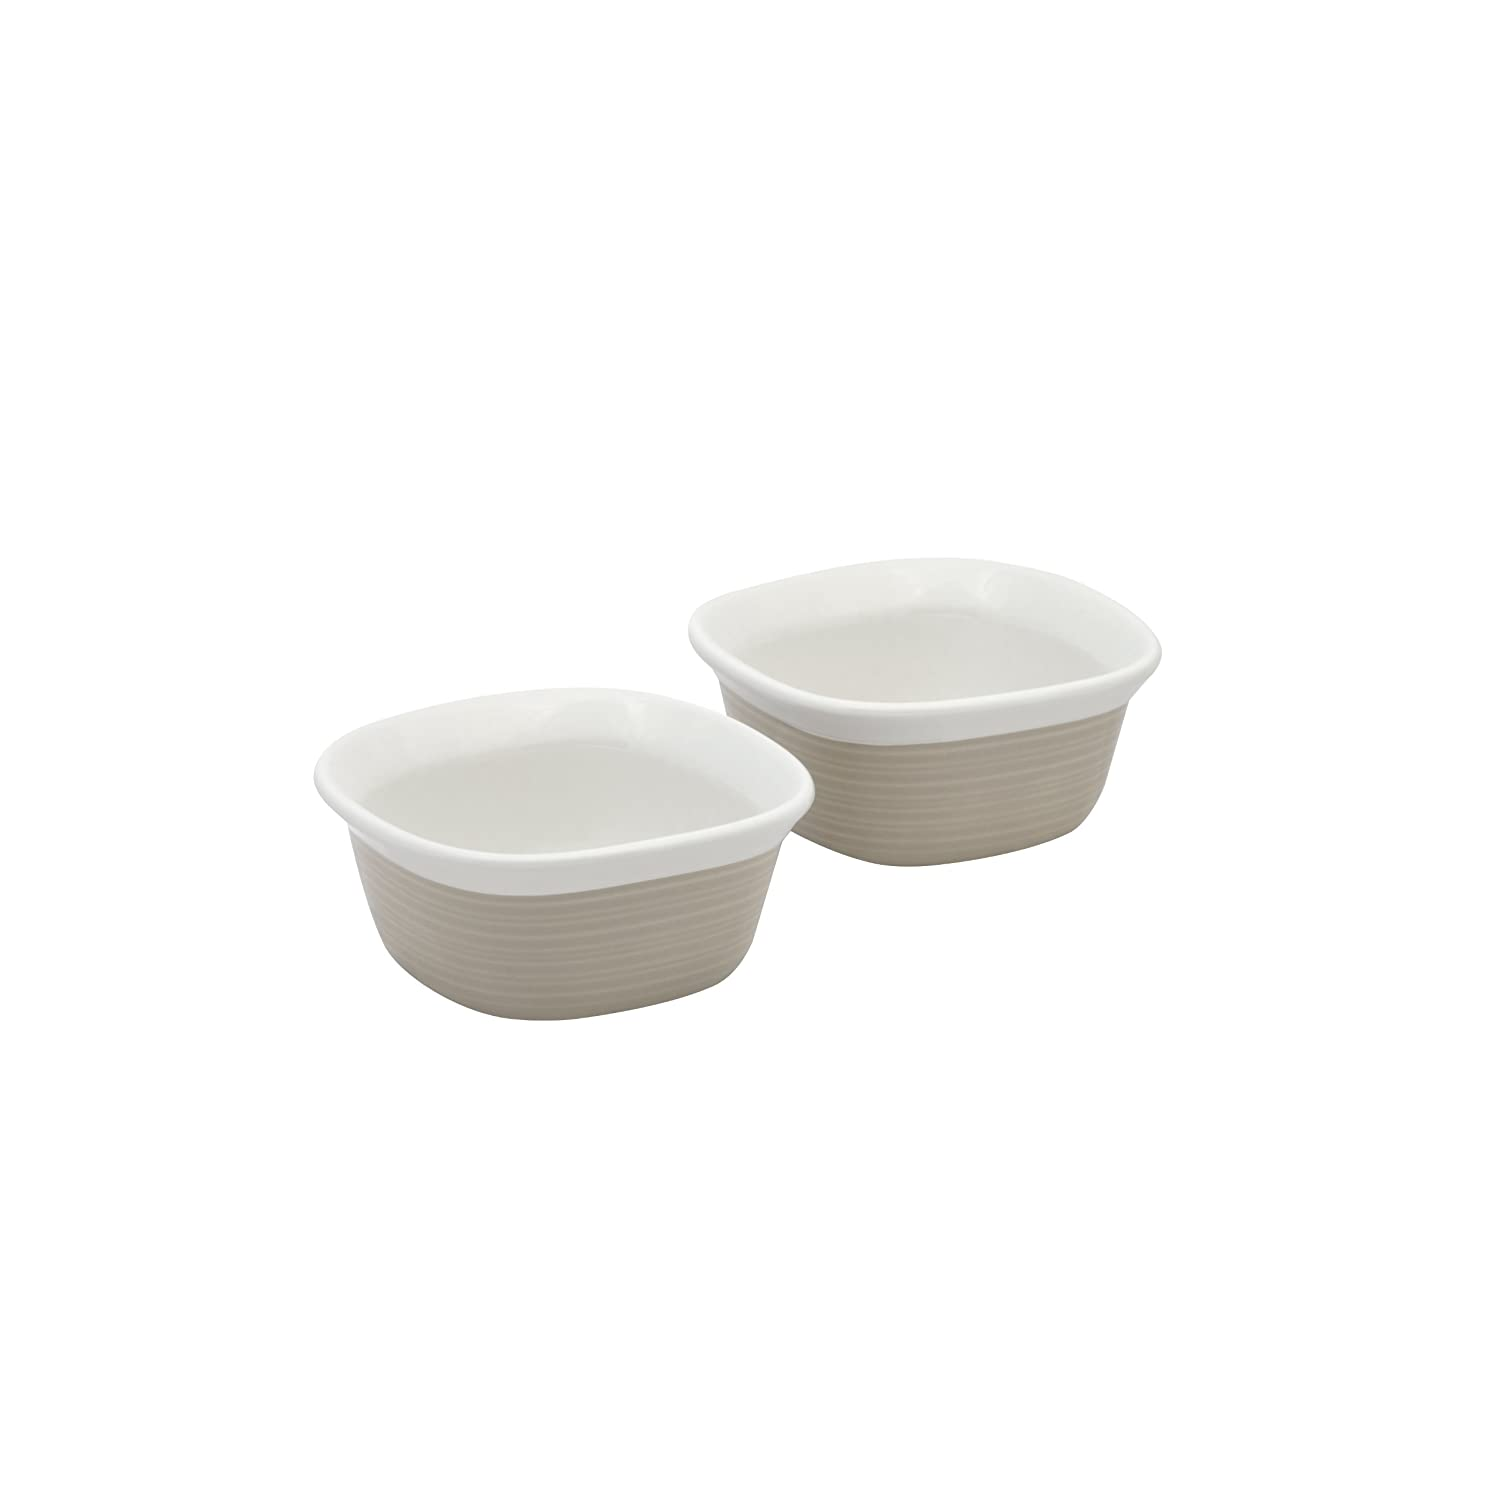 Corningware 1096863 Etch 7-Ounce Ramekin Twin Pack In Sand